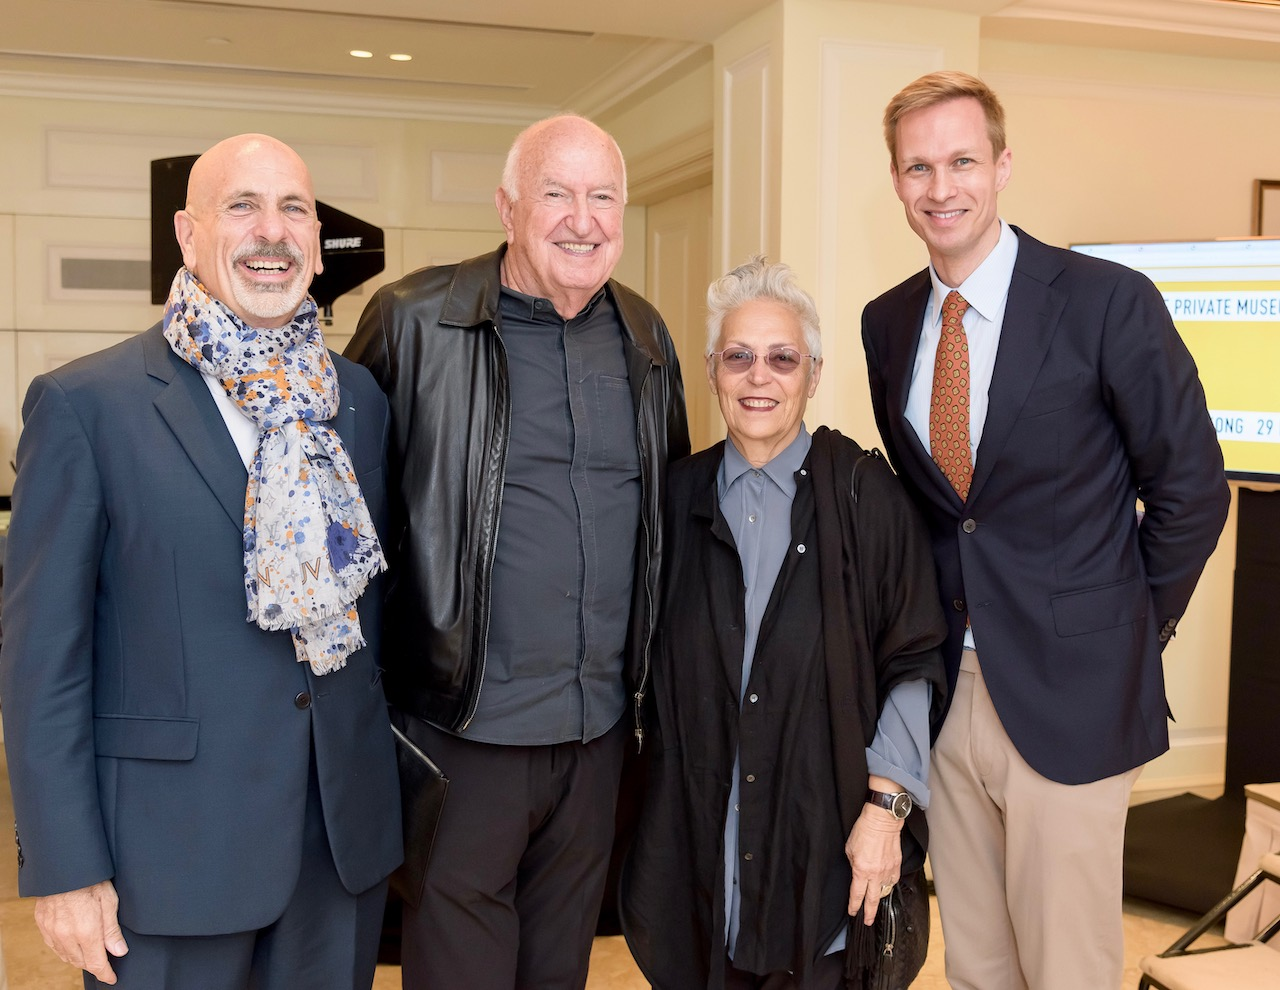 Scott Stover, Don and Mera Rubell, Christoph Noe